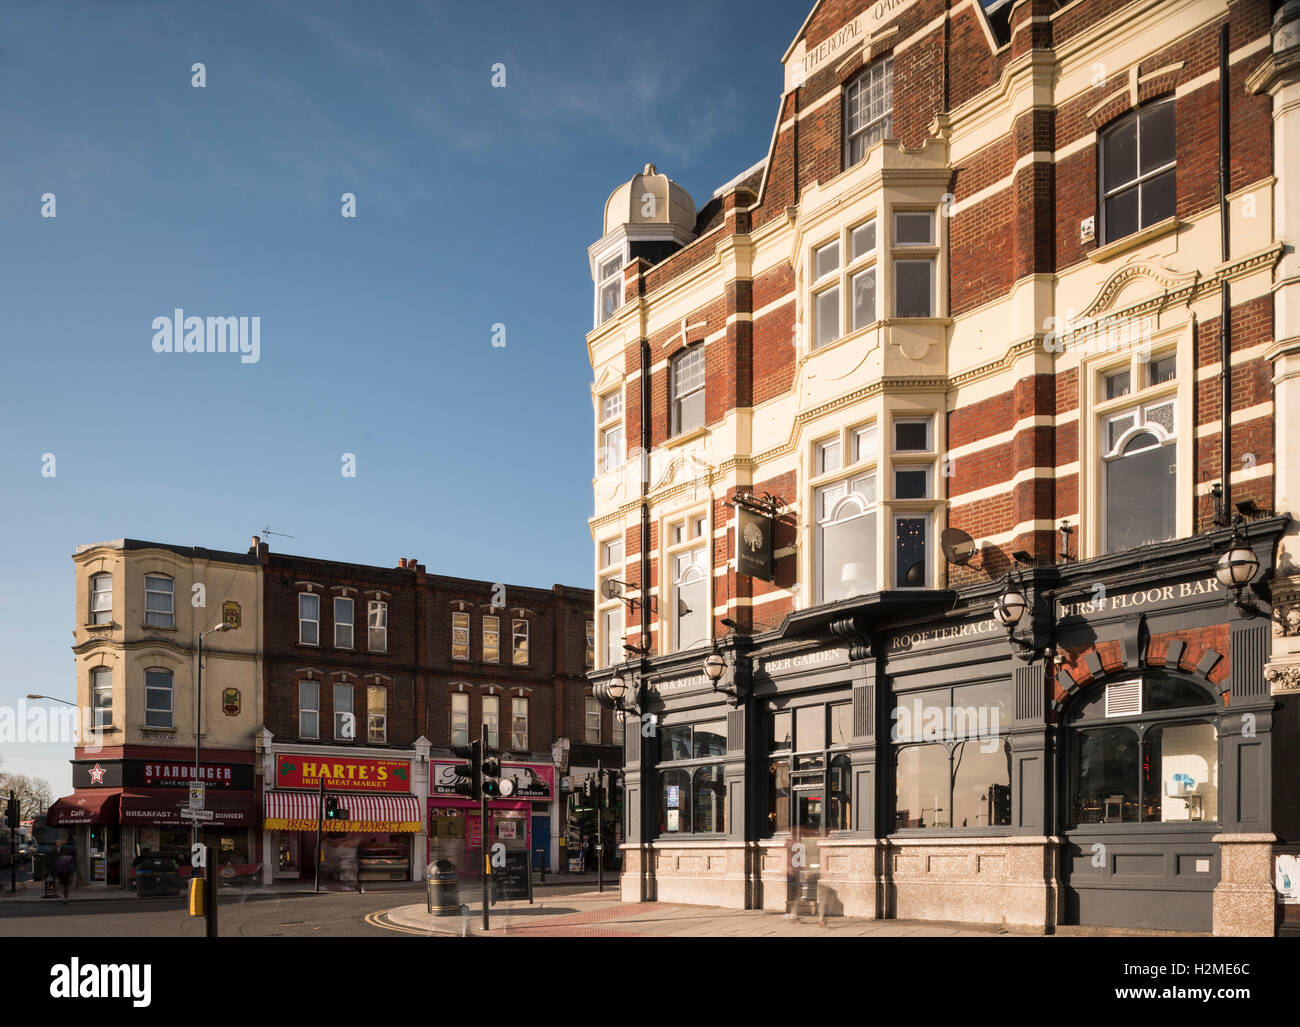 Street scene in Harlesden, London, UK - Stock Image